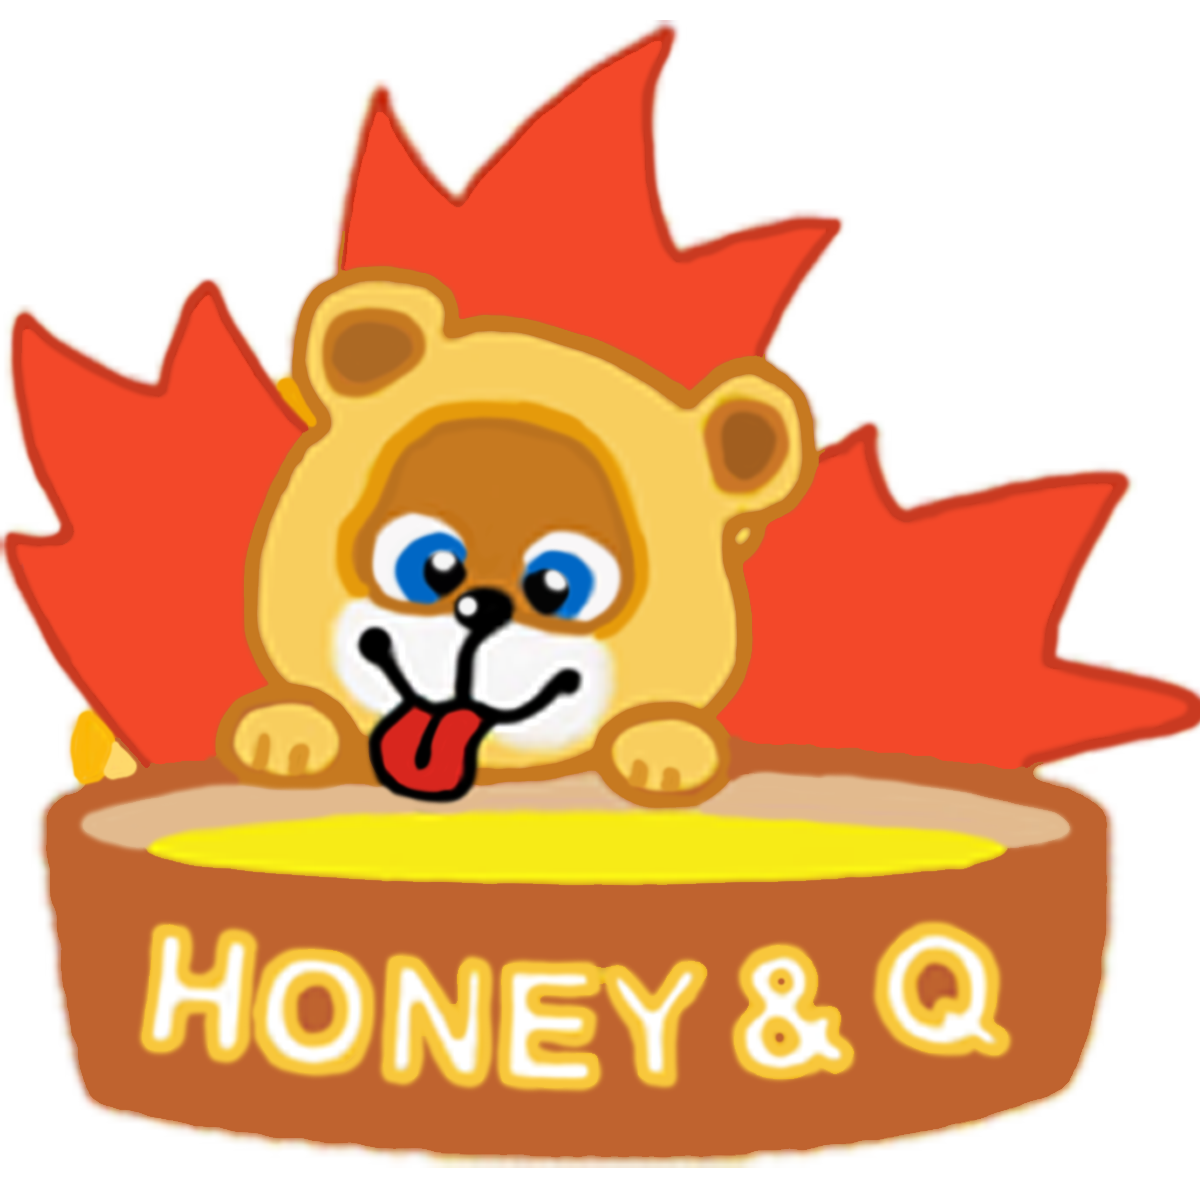 Honey & Q Co.